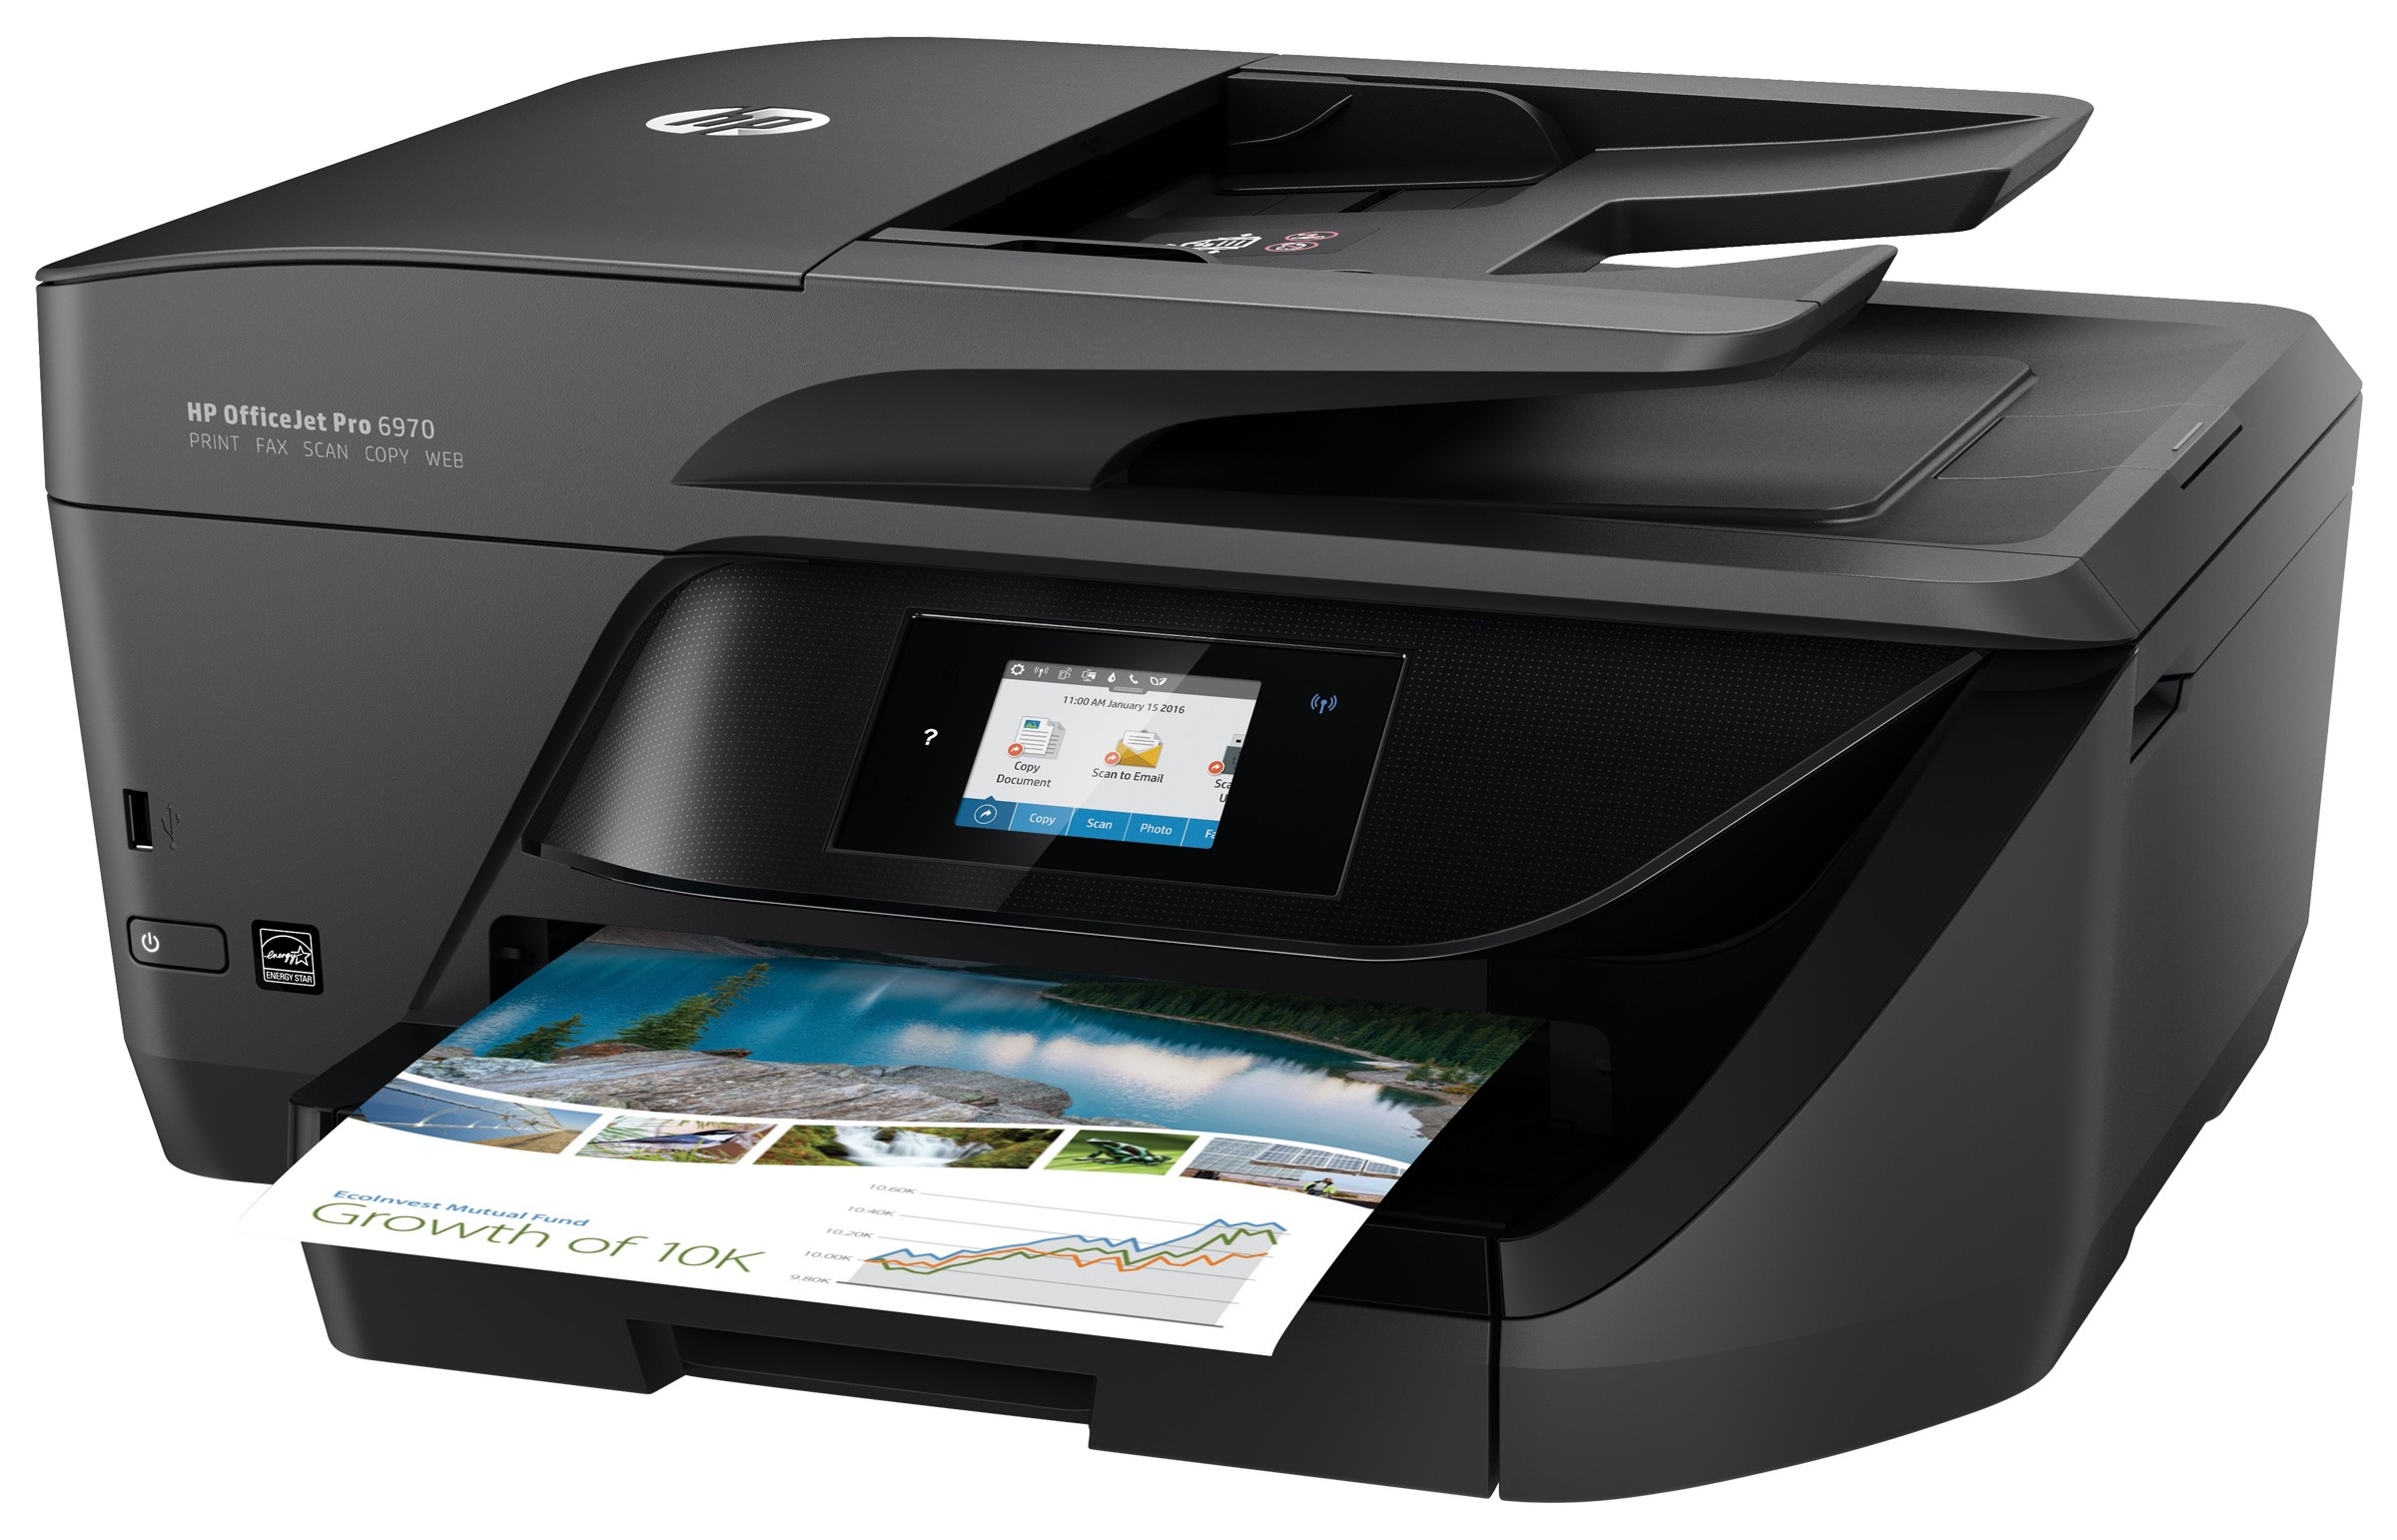 hp_officejetpro_6970_HP905XL_HP909XL